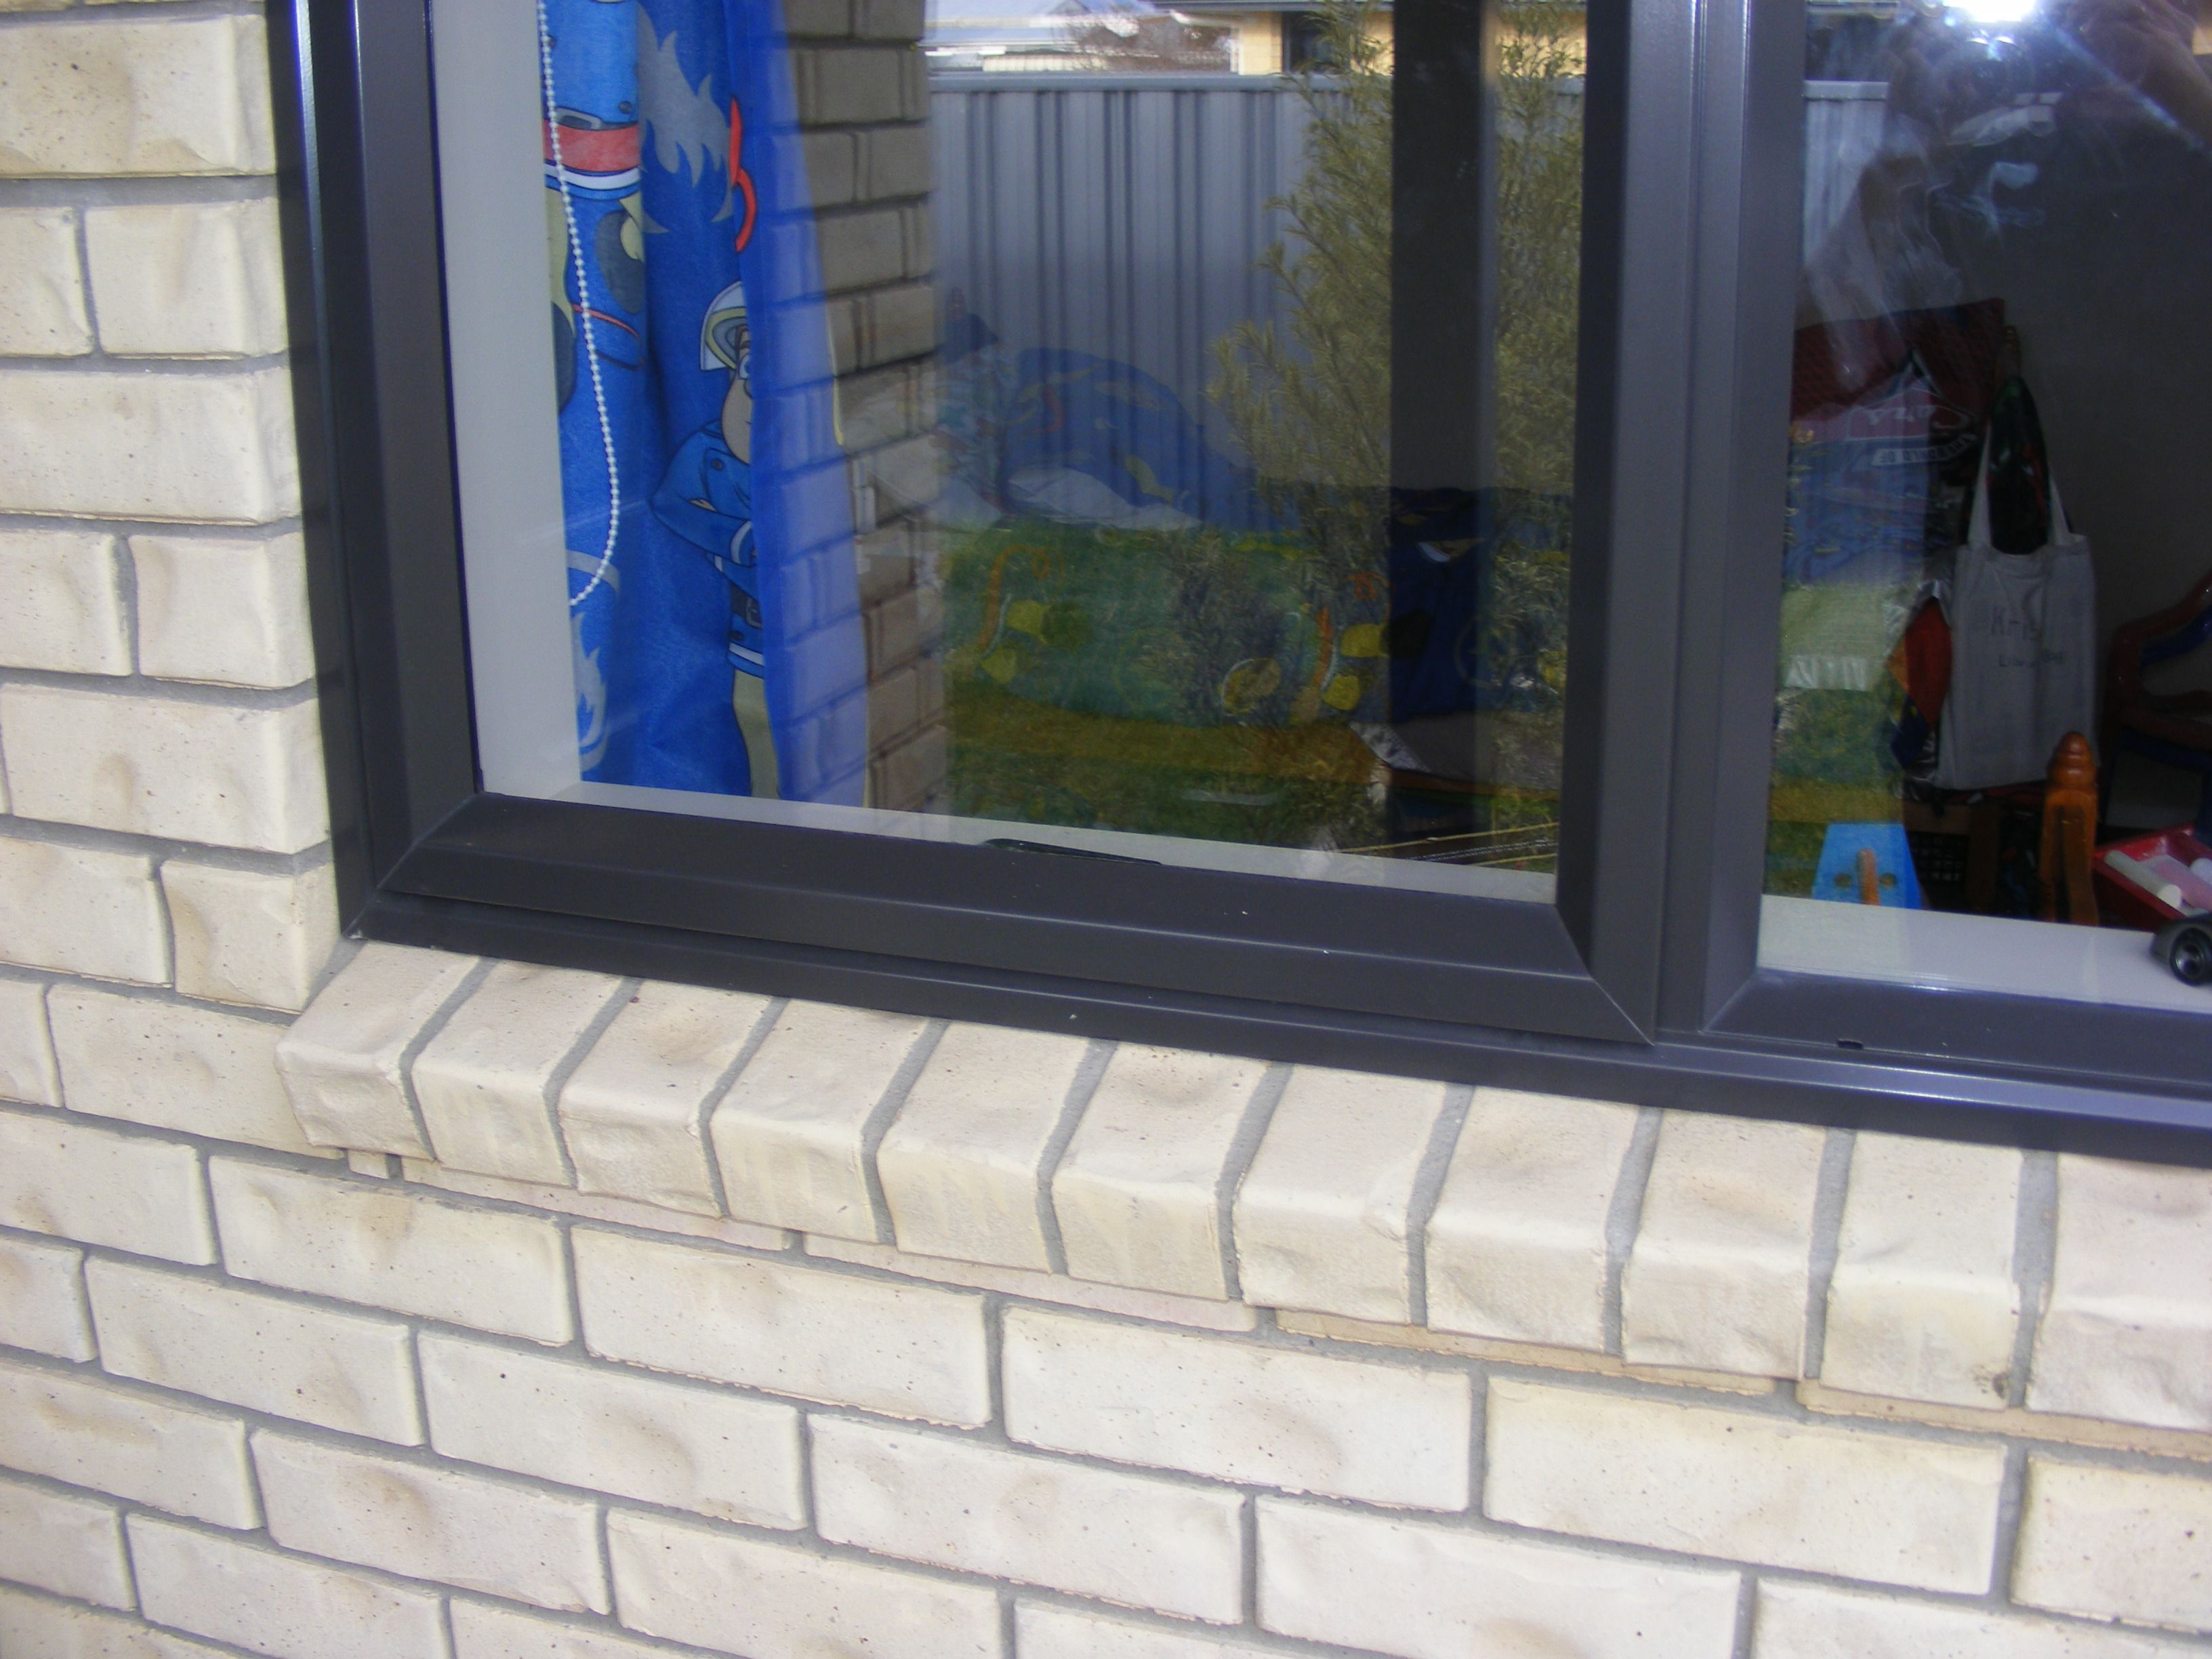 View of the window with screen protection installed